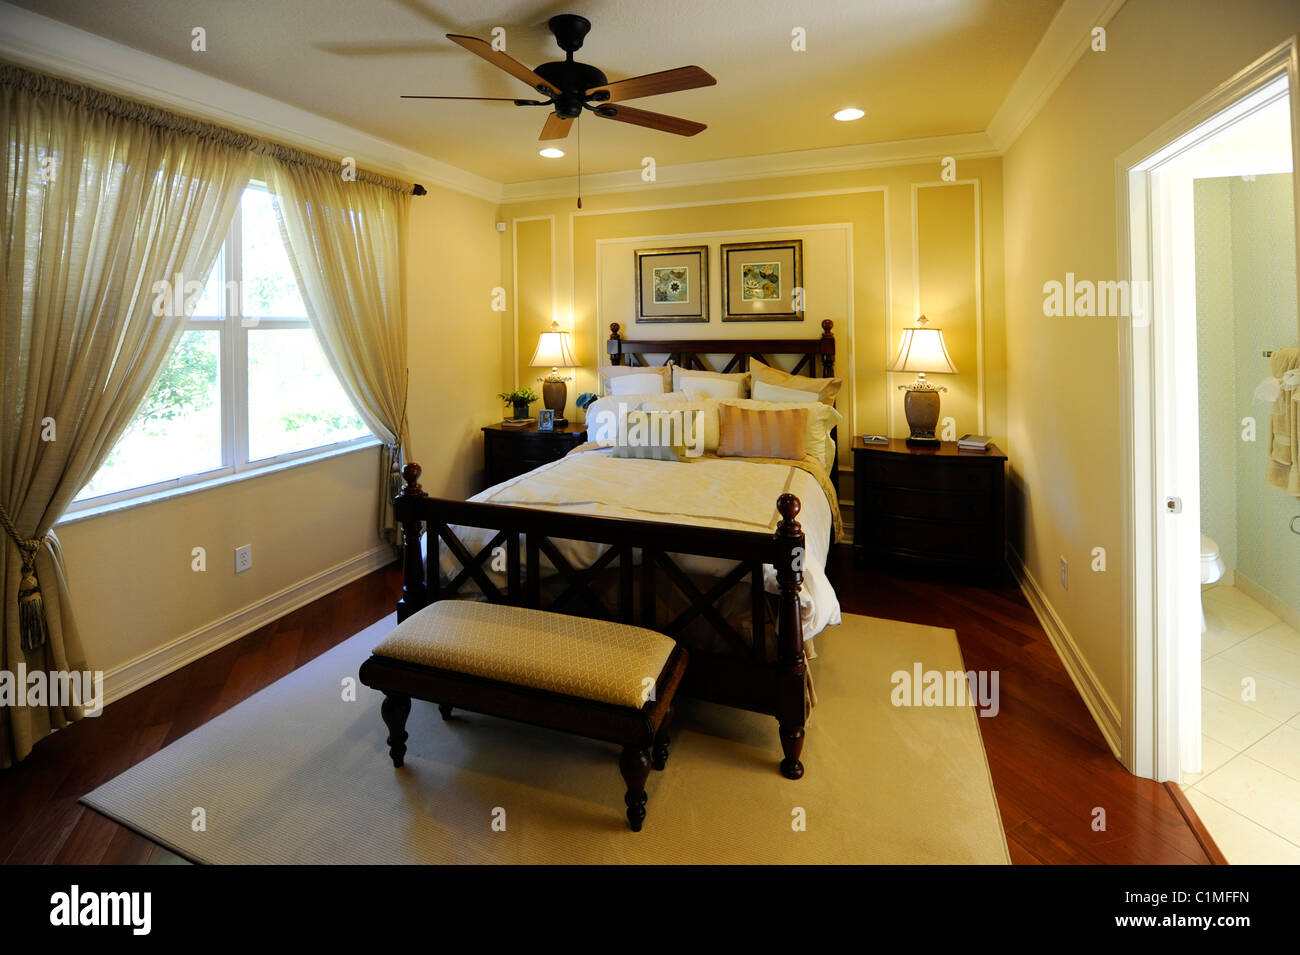 Interior spacious modern bedroom of an upscale new home construction Tampa Florida - Stock Image